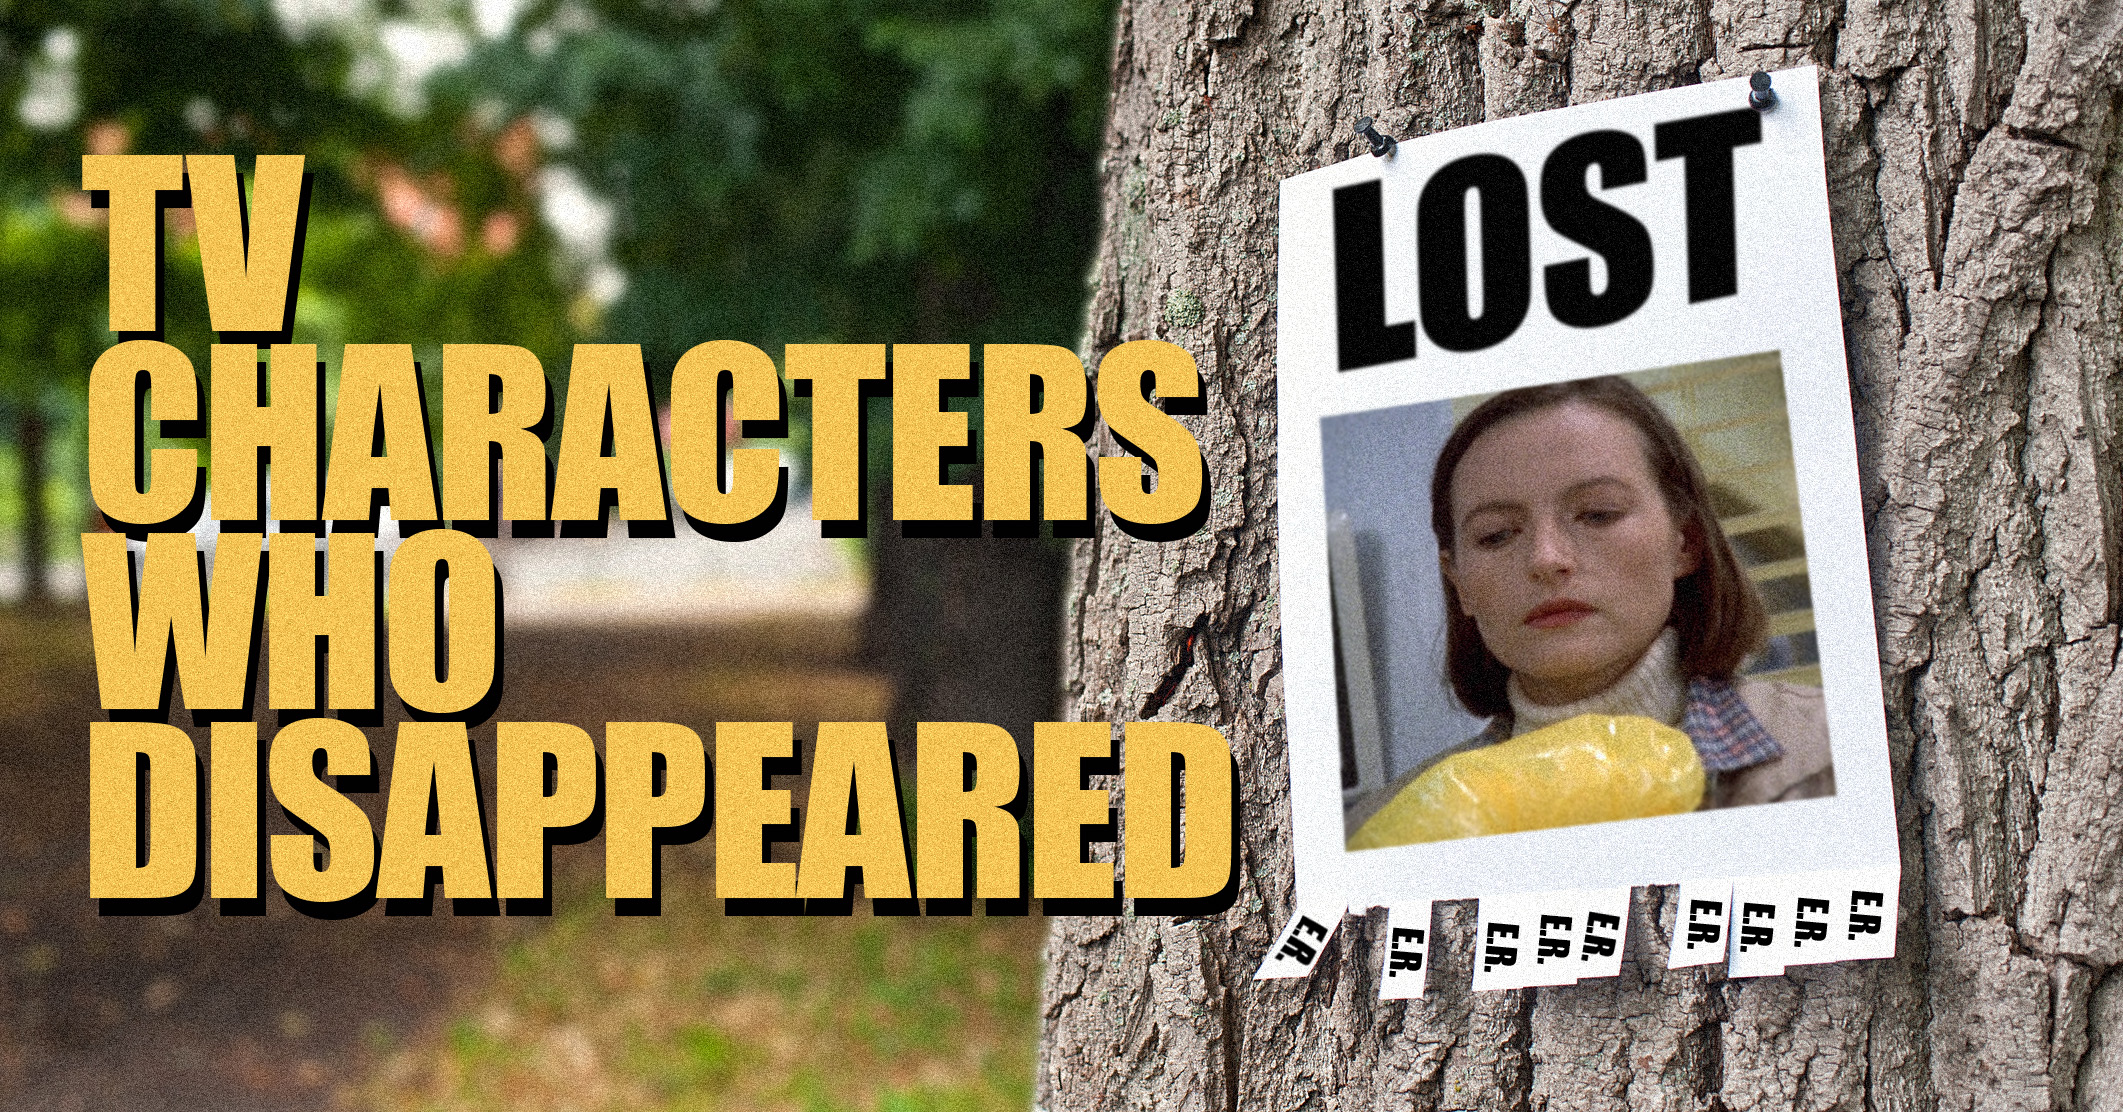 7 characters who disappeared from TV dramas without a trace